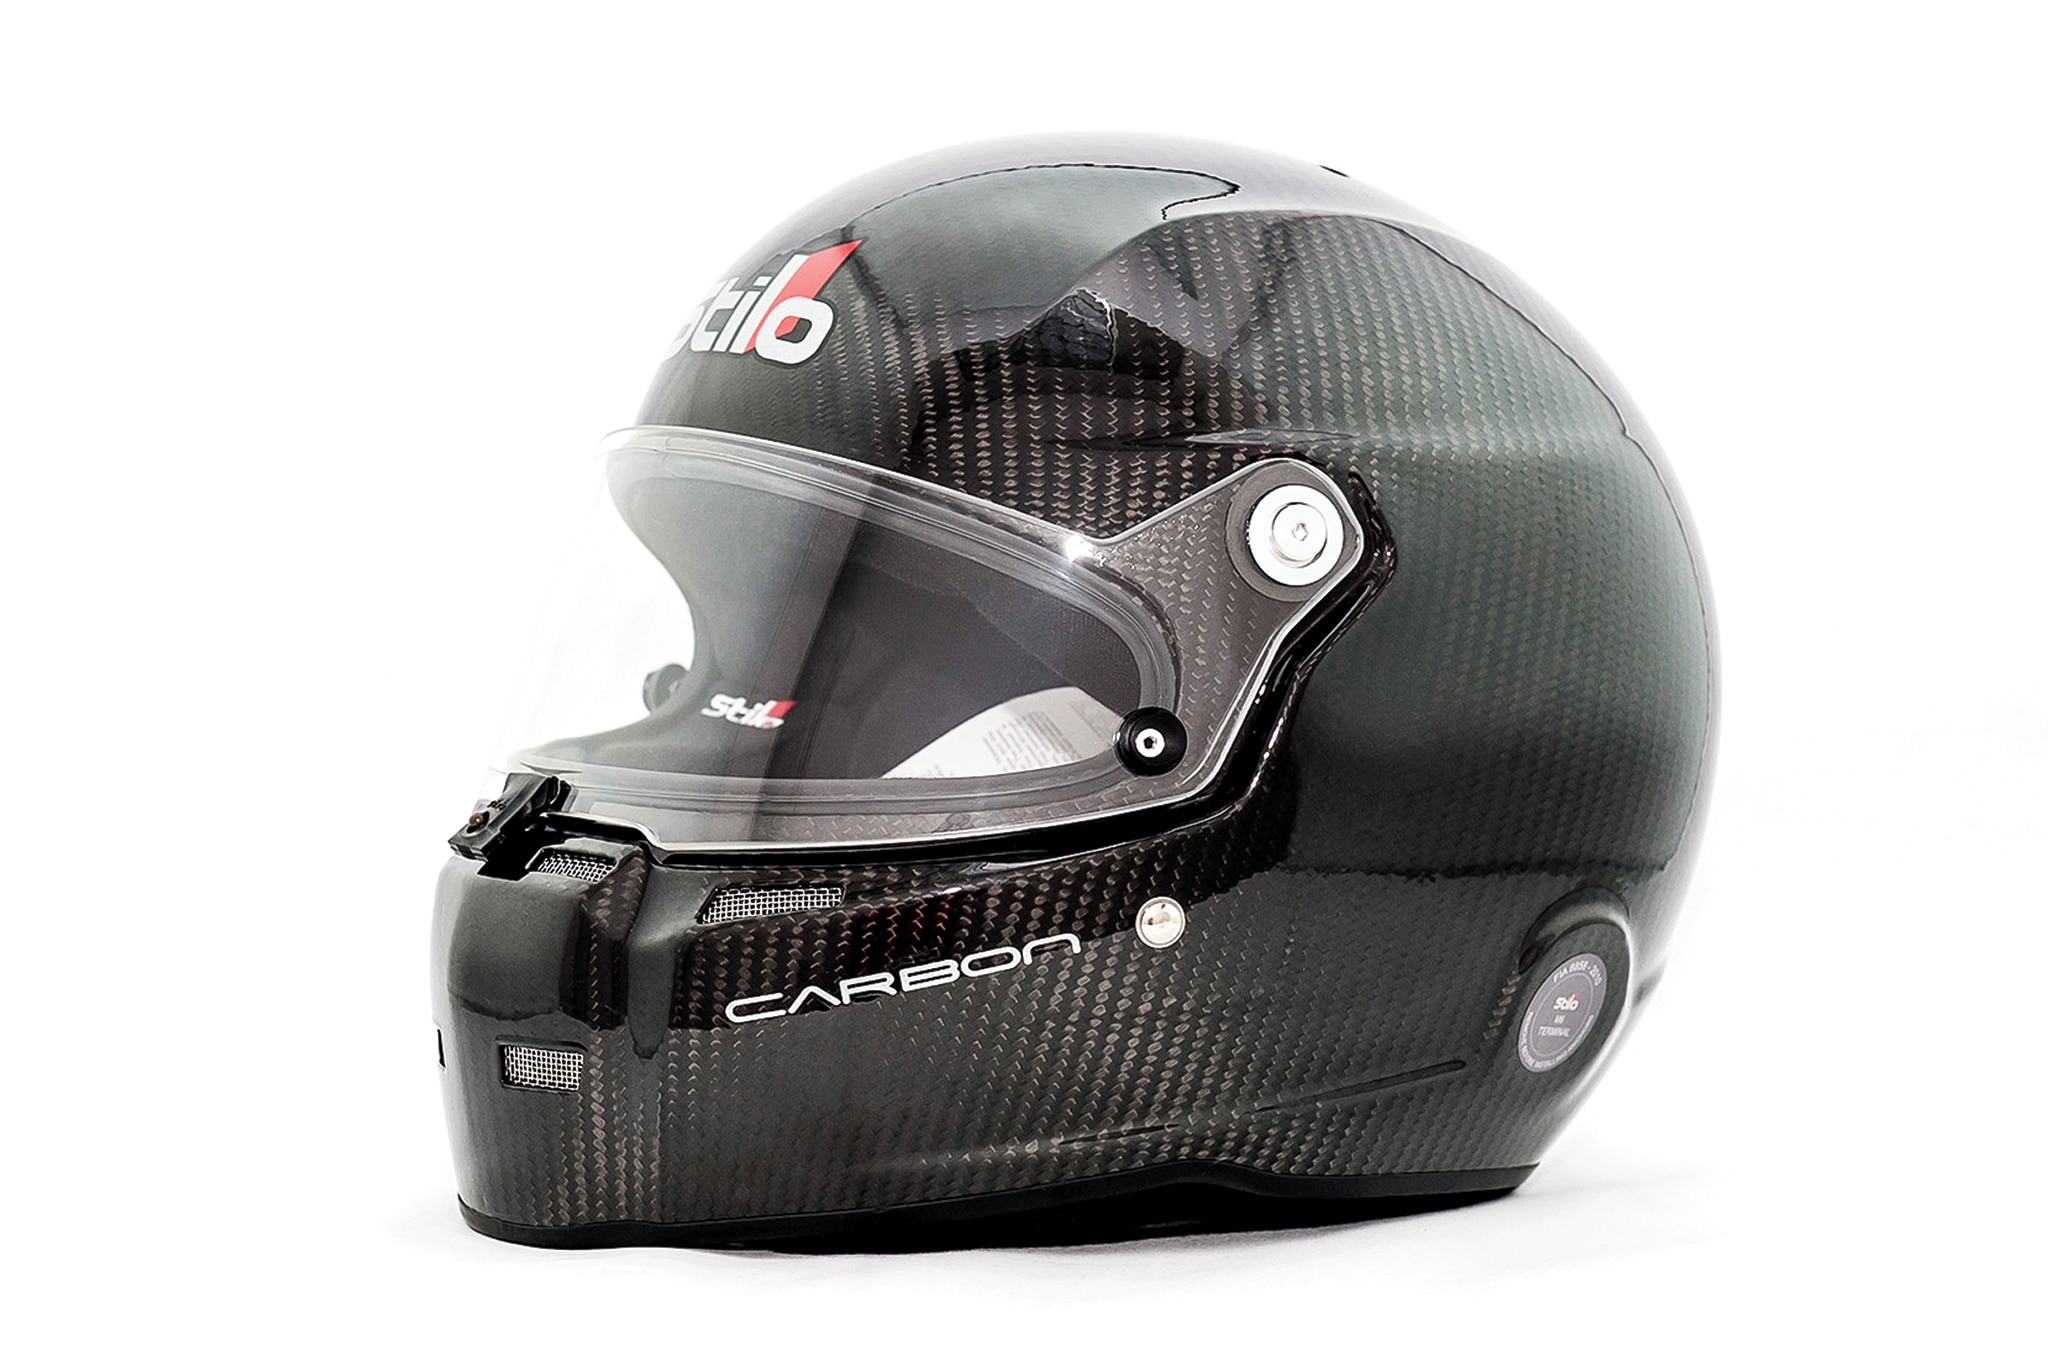 Helmets for car enthusiasts from January 1, 2018 55